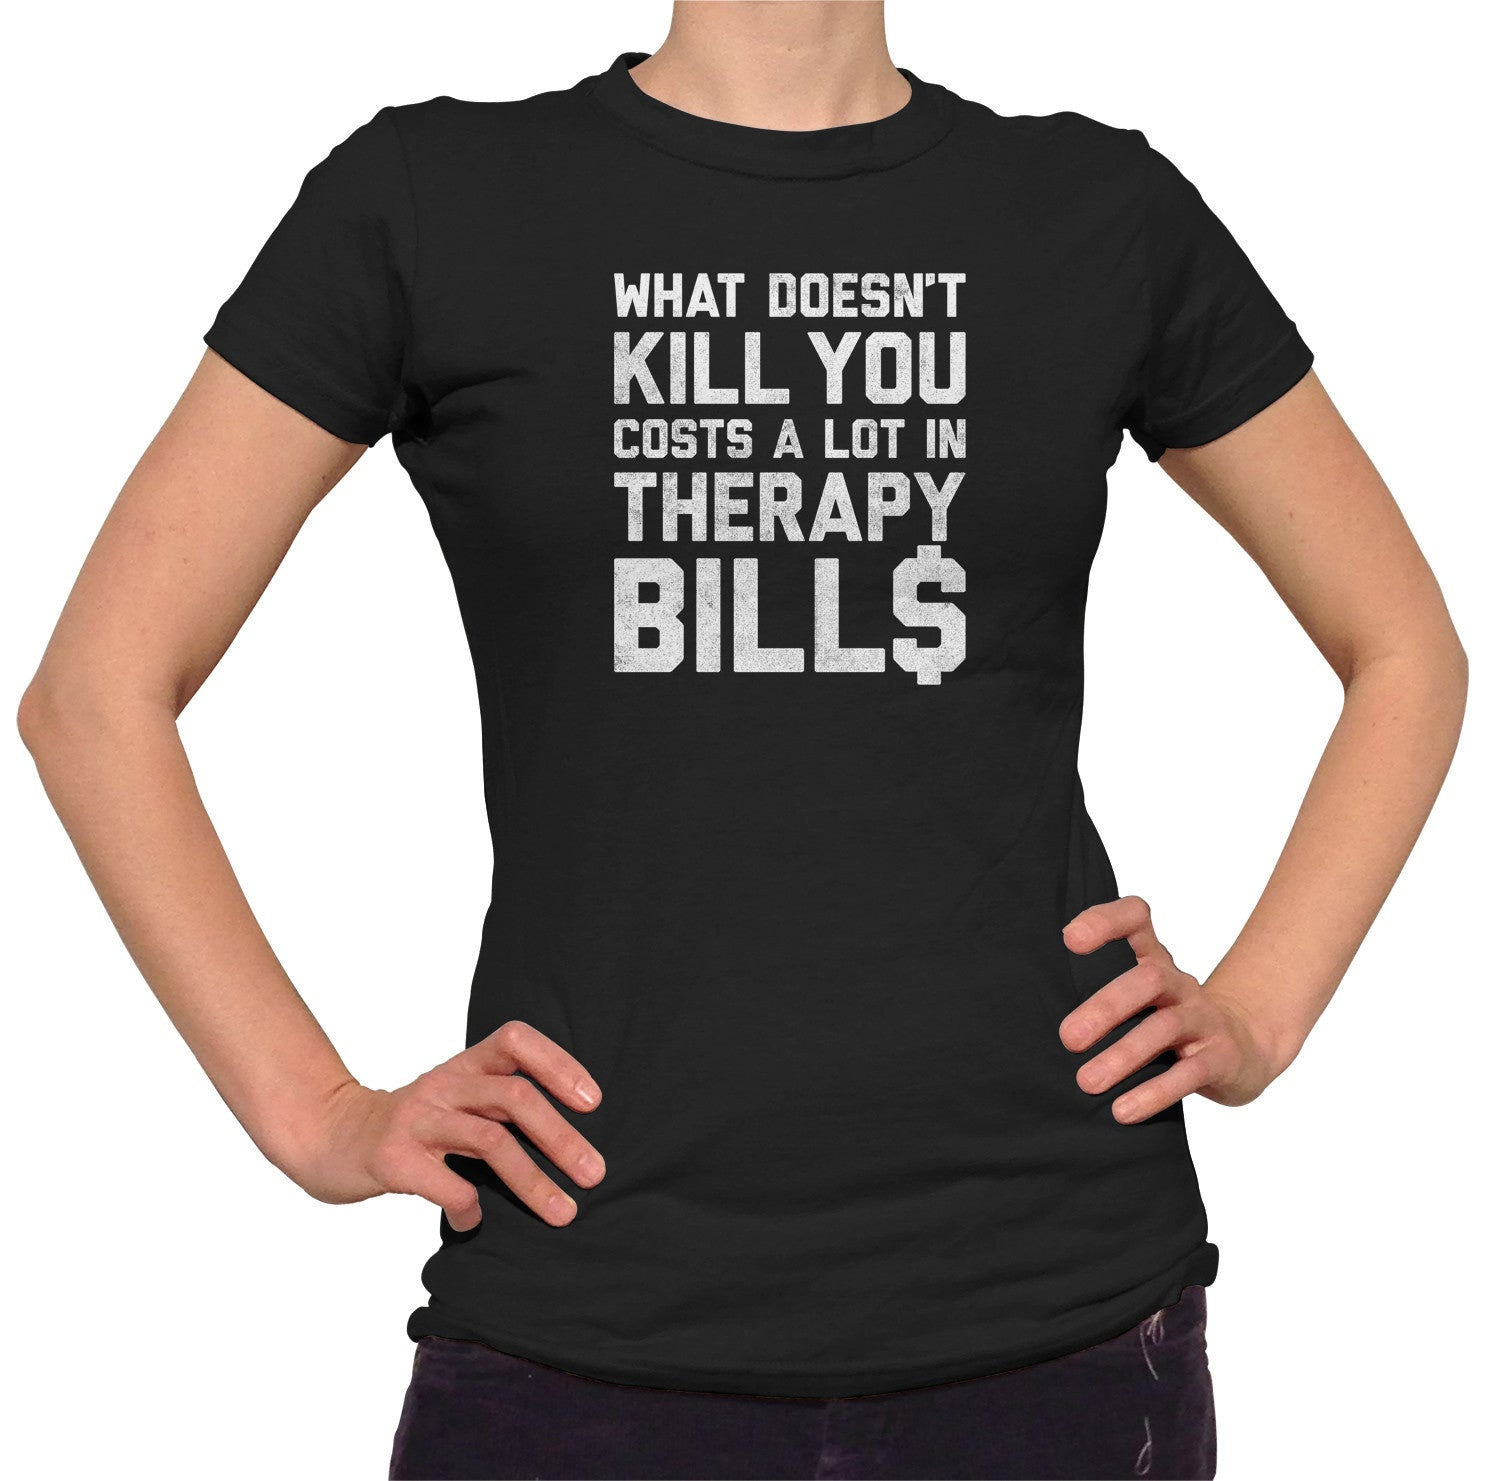 Women's What Doesn't Kill You Costs a Lot in Therapy Bills T-Shirt